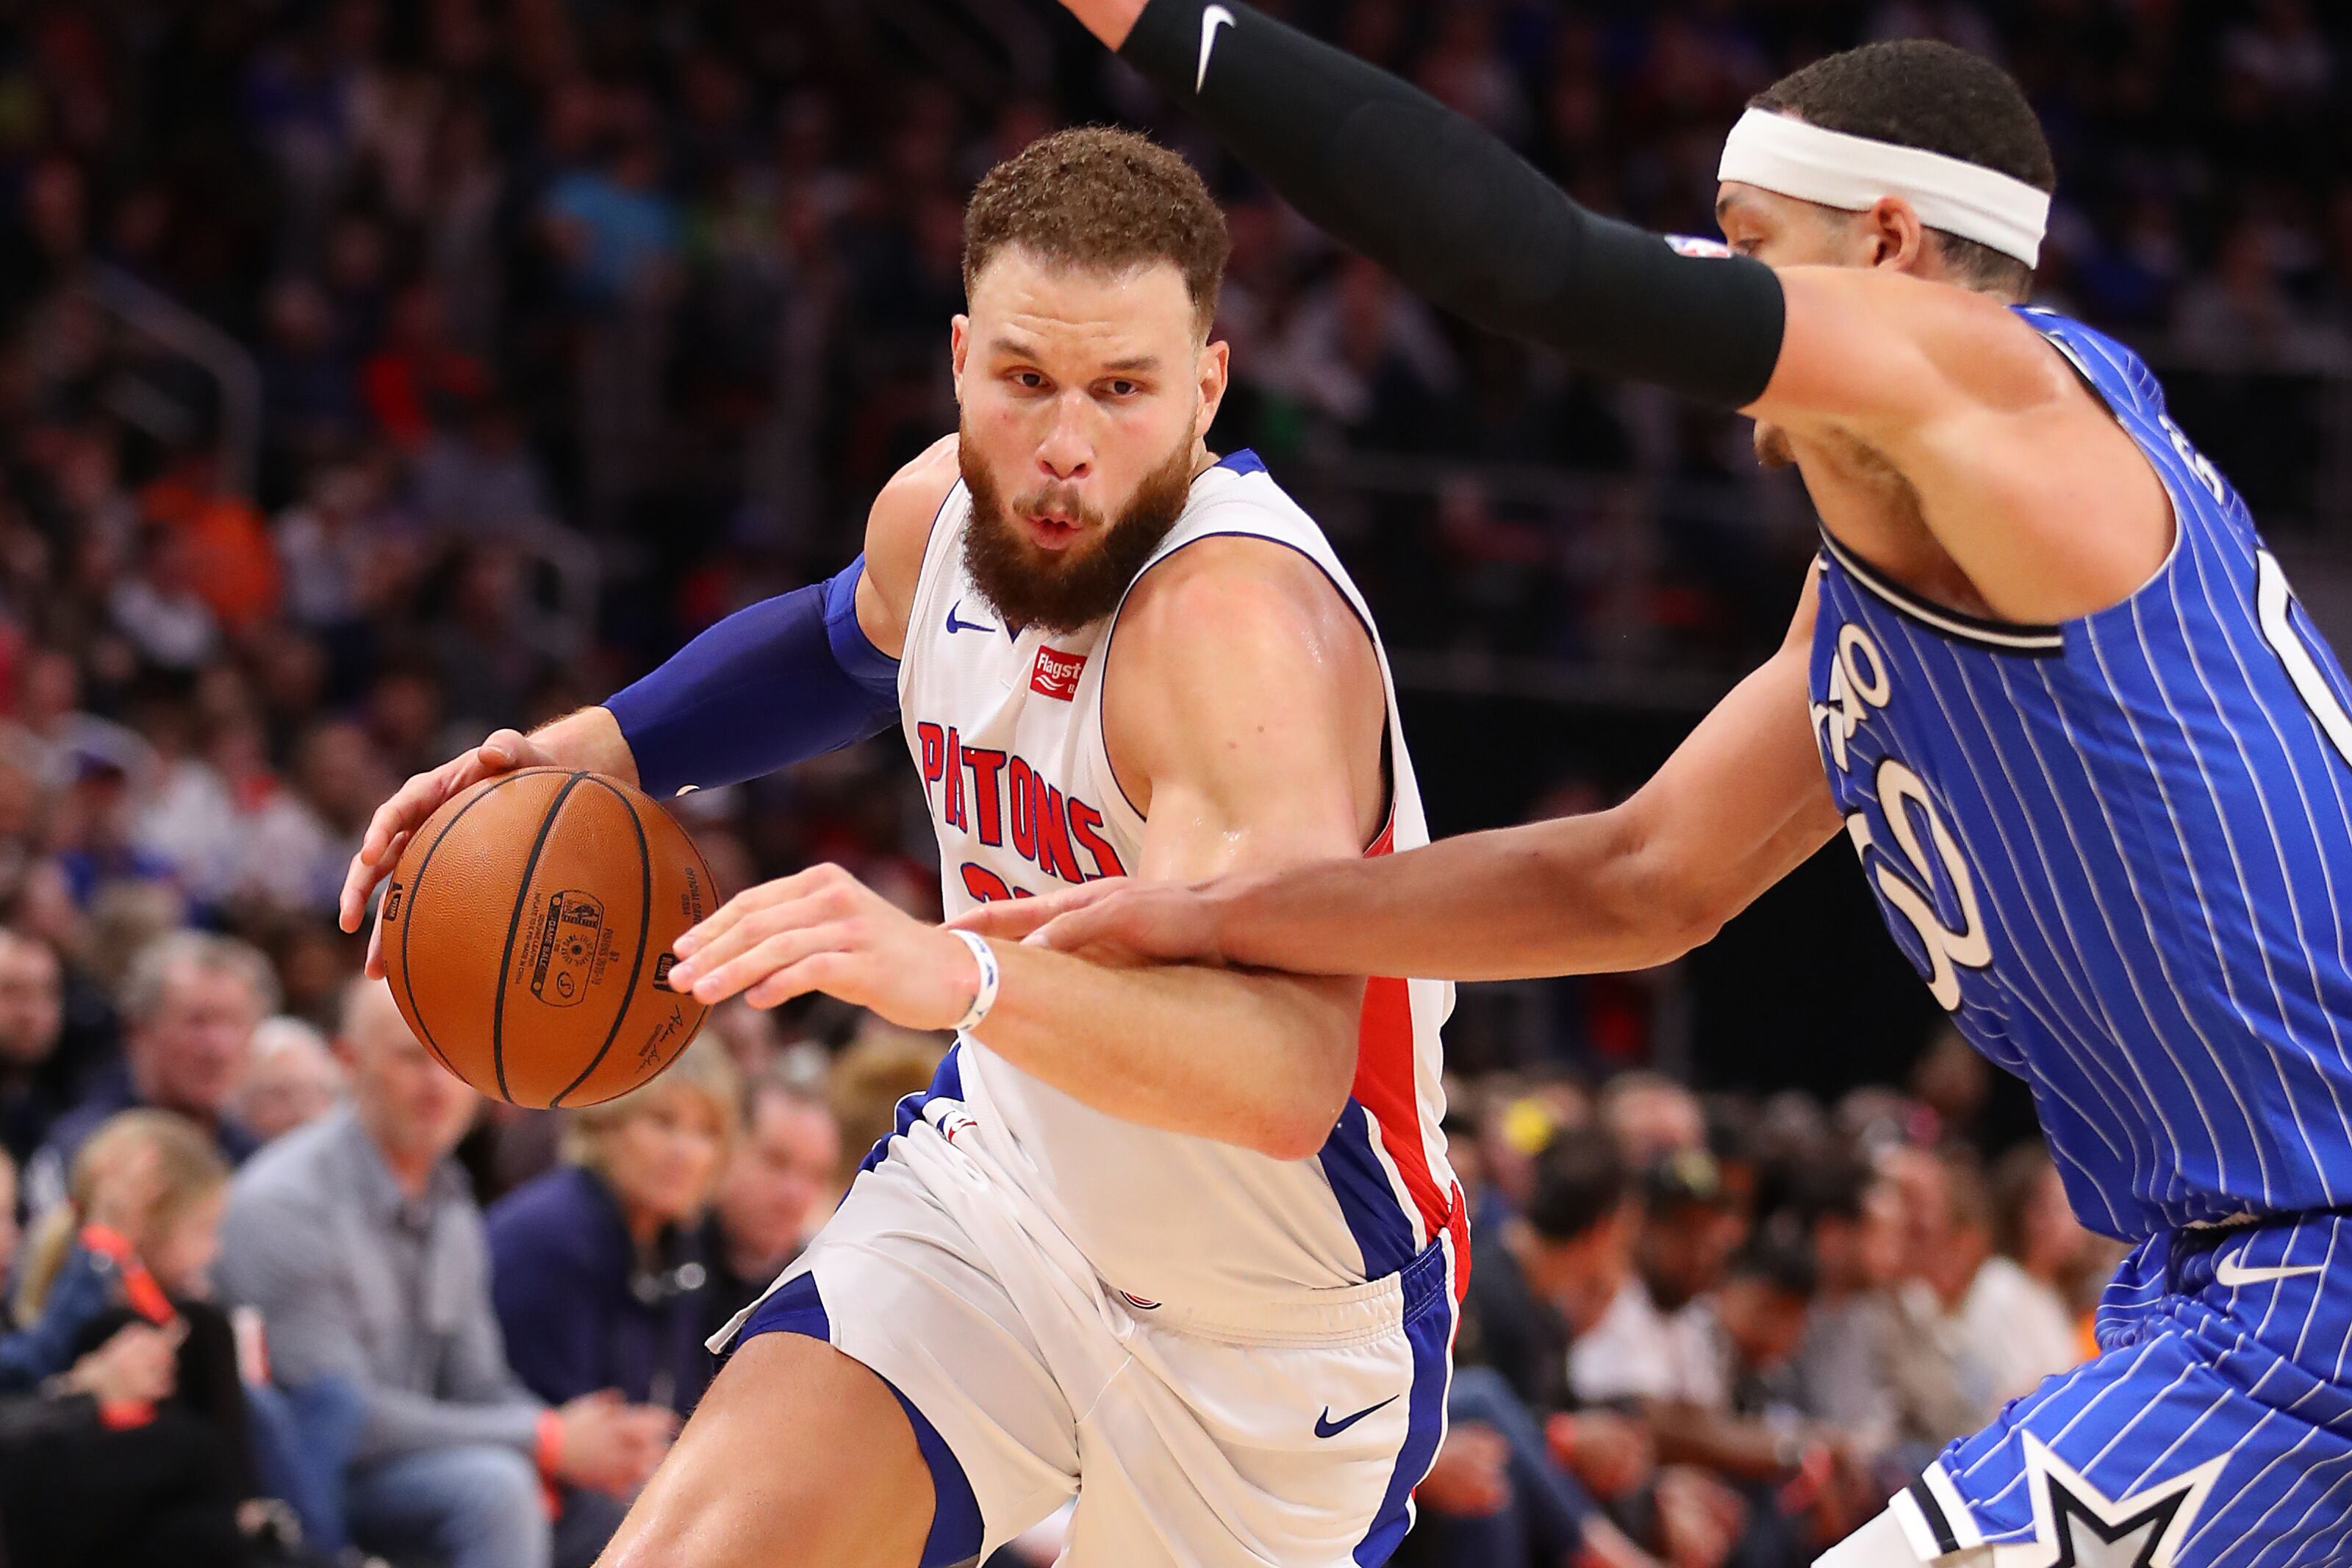 DETROIT, MICHIGAN - MARCH 28: Blake Griffin #23 of the Detroit Pistons drives around Aaron Gordon #00 of the Orlando Magic during the second half at Little Caesars Arena on March 28, 2019 in Detroit, Michigan. Detroit won the game 115-98. NOTE TO USER: User expressly acknowledges and agrees that, by downloading and or using this photograph, User is consenting to the terms and conditions of the Getty Images License Agreement. (Photo by Gregory Shamus/Getty Images)